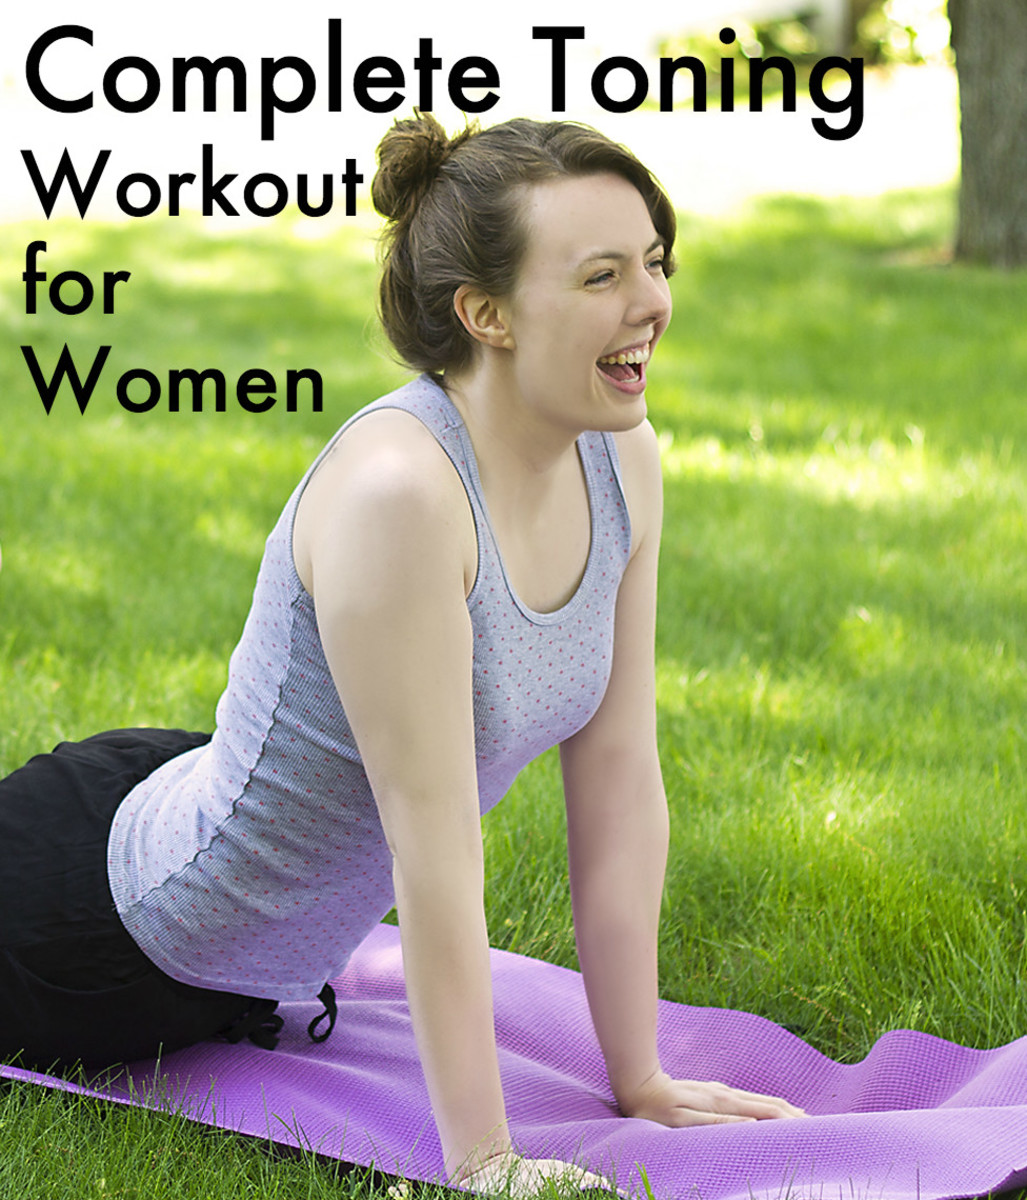 Toning Exercises for Women: Complete Workout Plan for Beginners